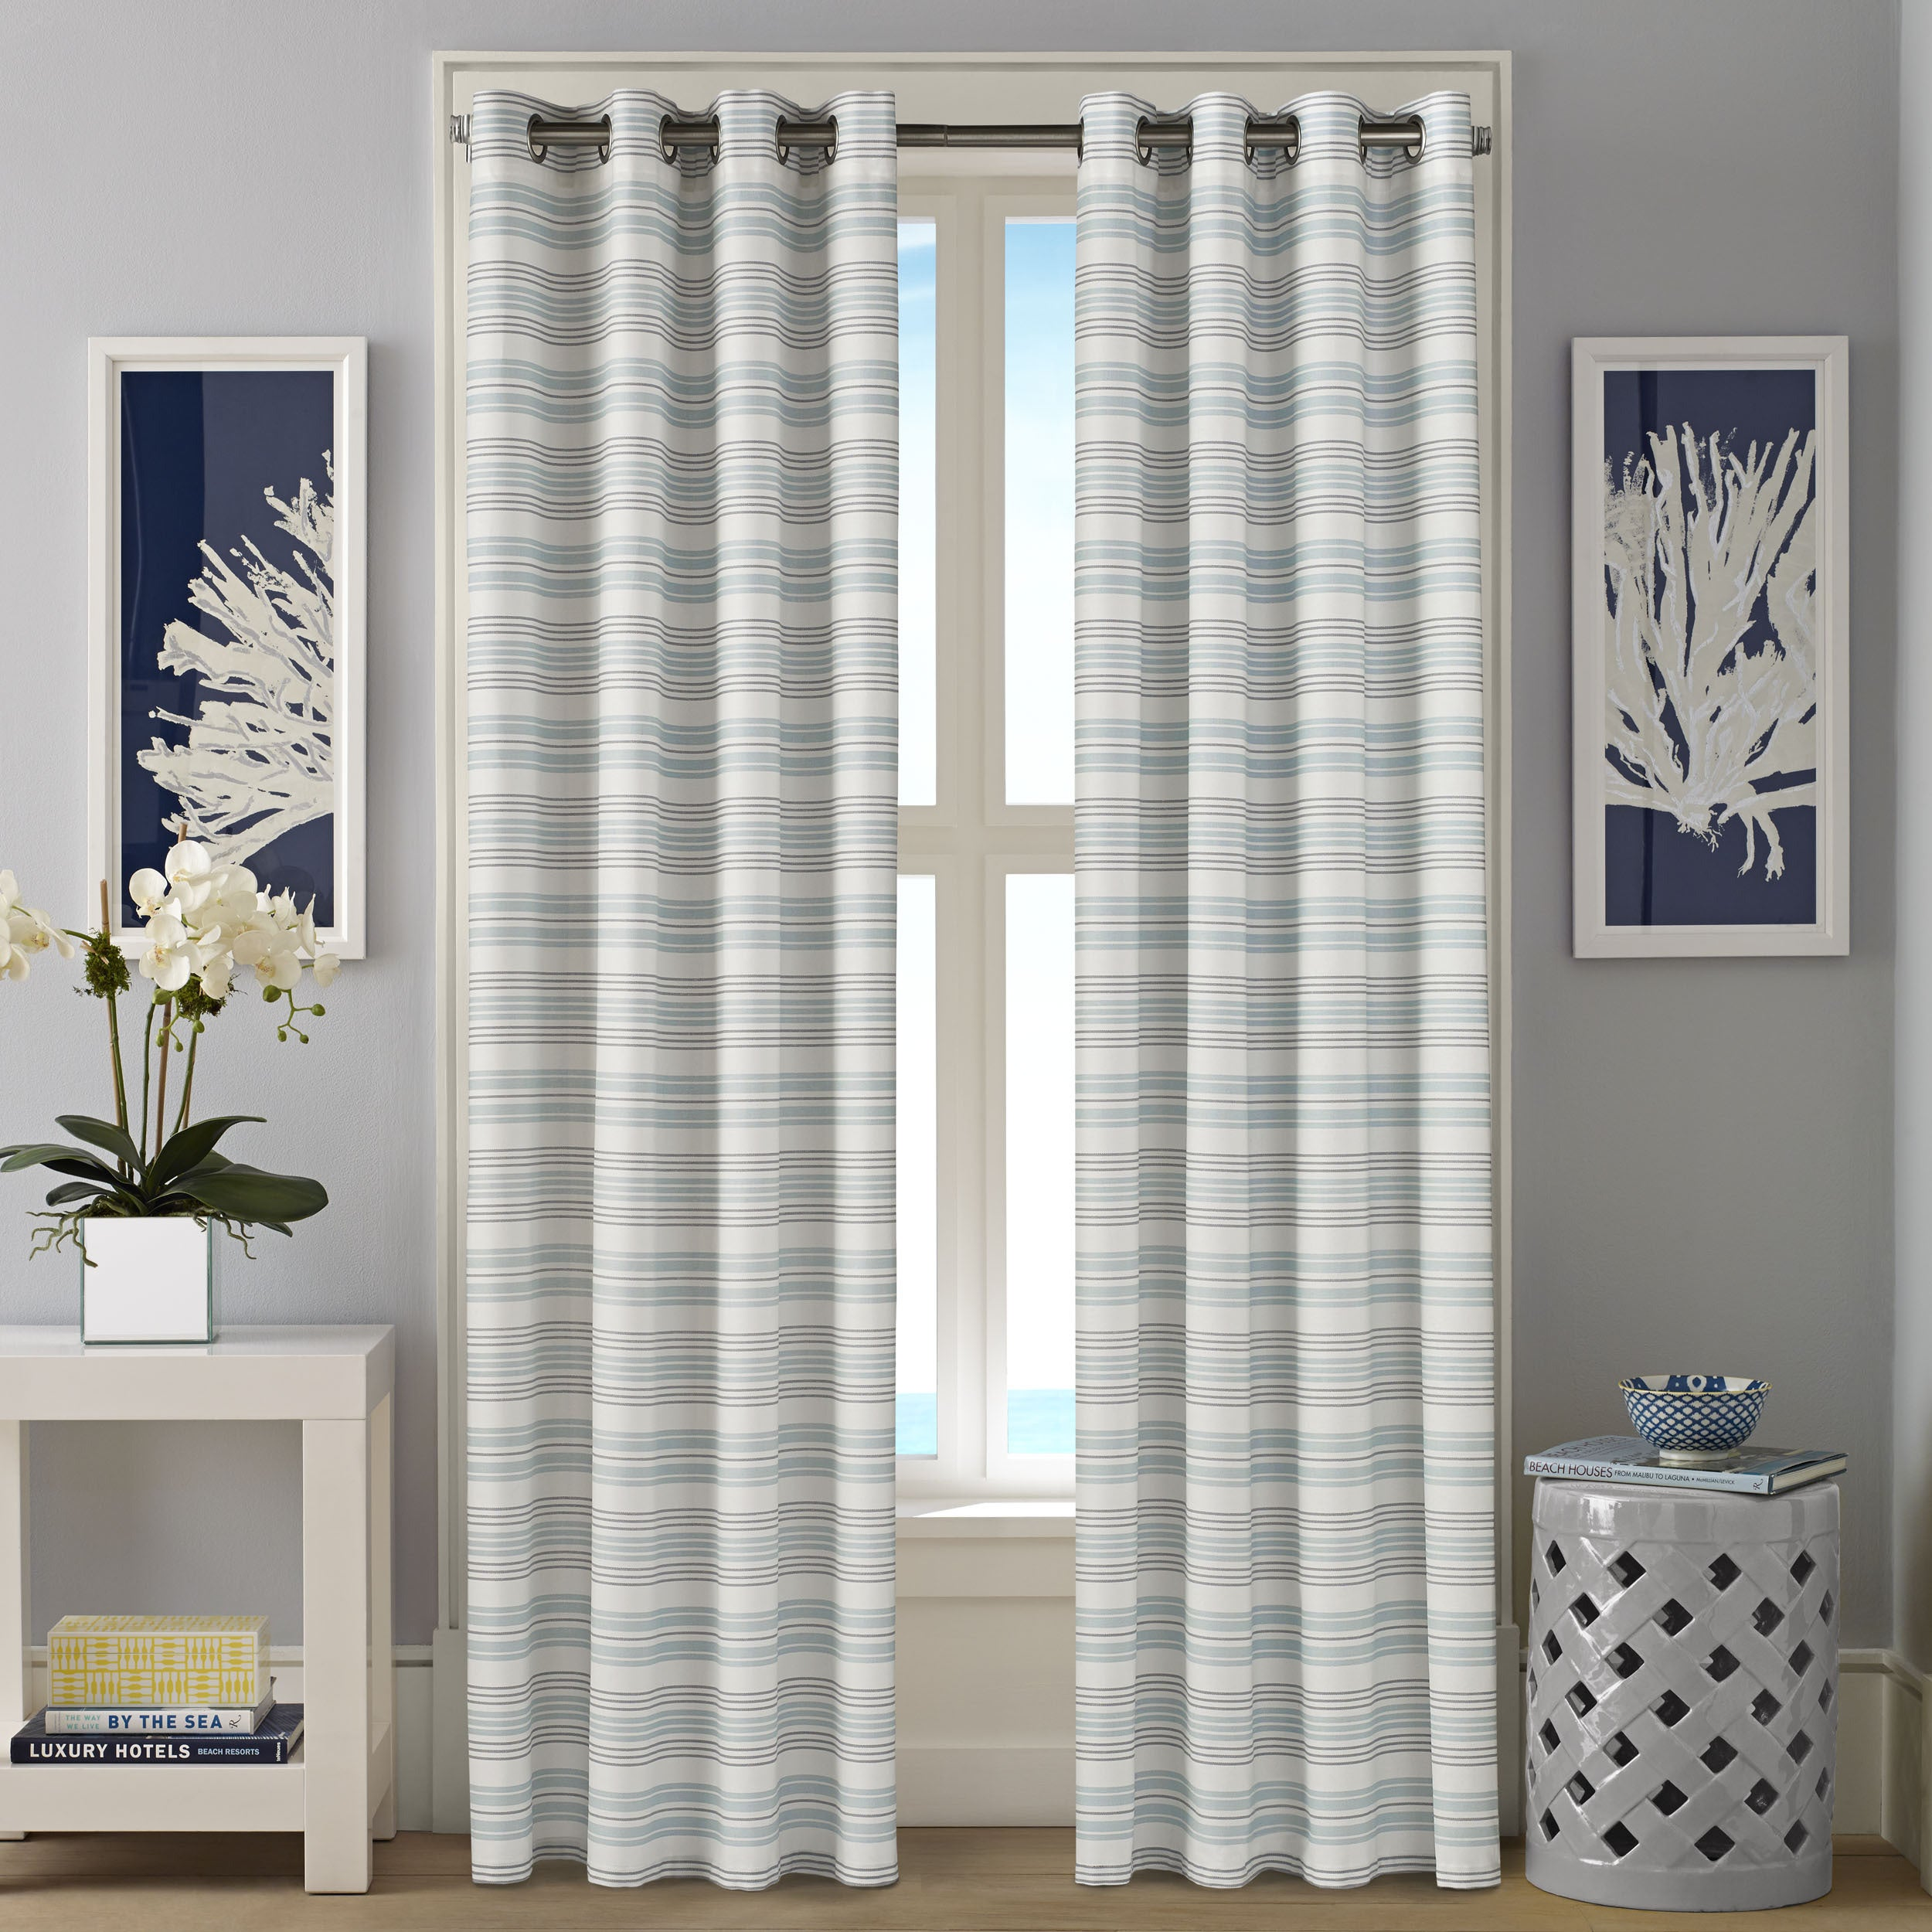 stripe coastal striped blue curtain full excellent curtains pinterest and of whiteipe nautica concept decor navy nauticaliped white size red cabana ticking image